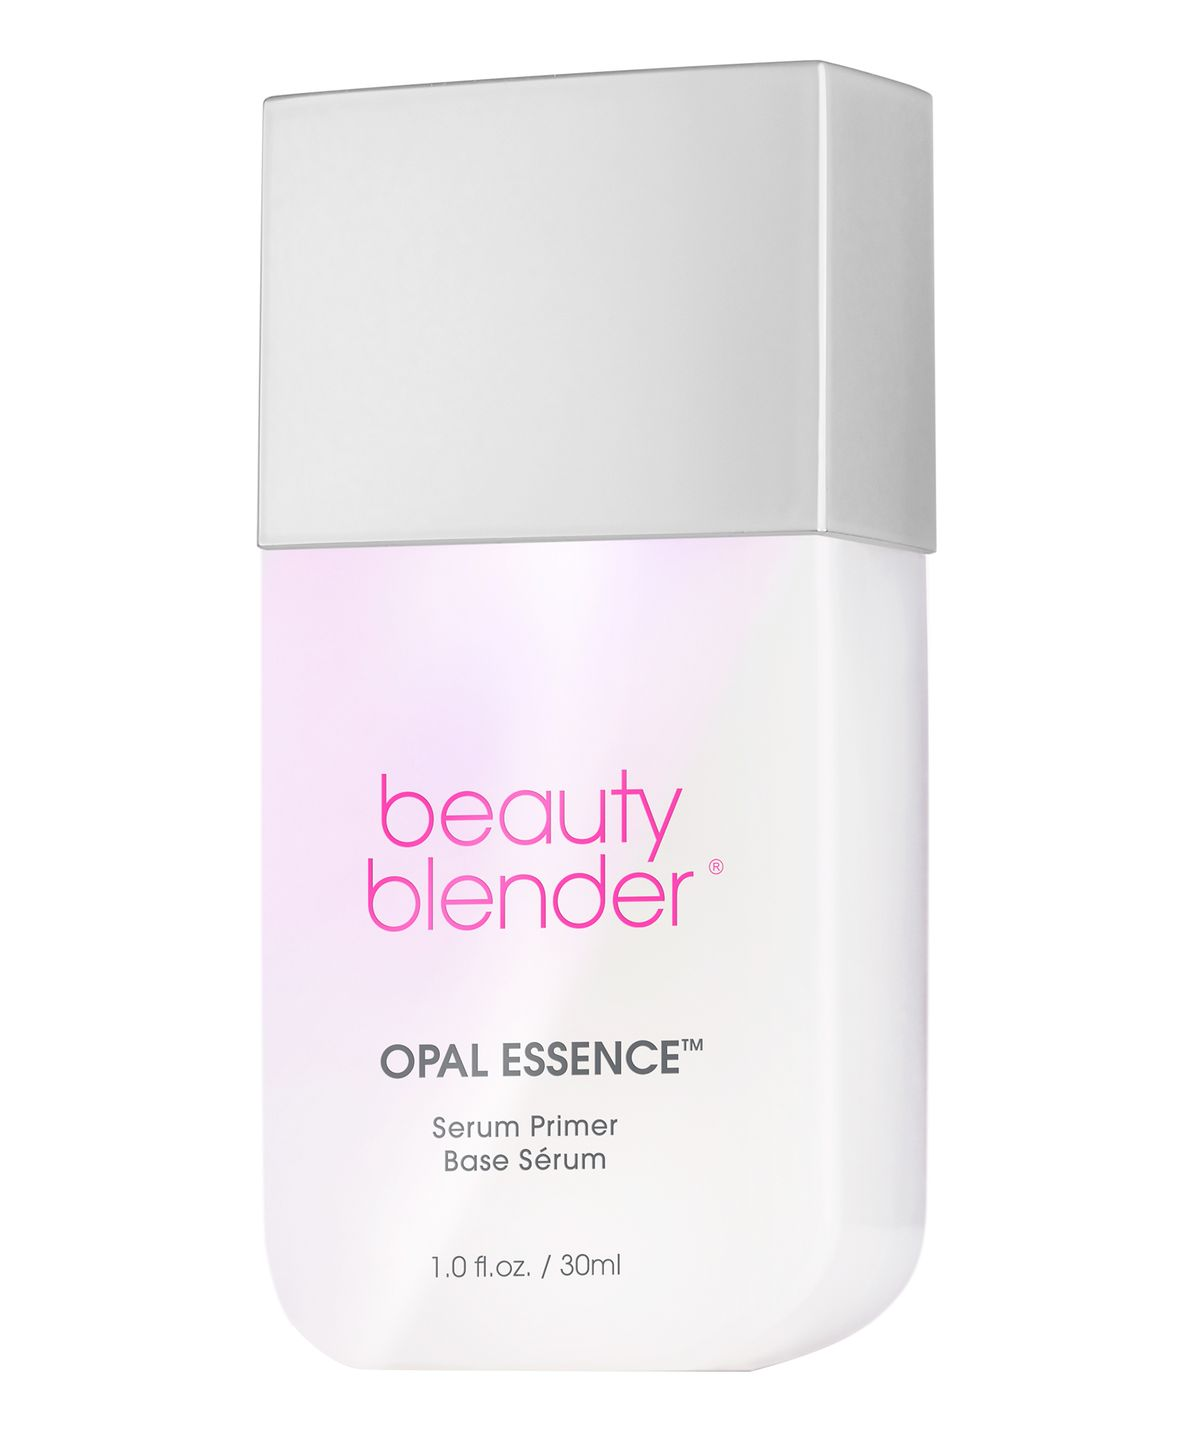 Beauty Blender Opal Essence Serum Primer